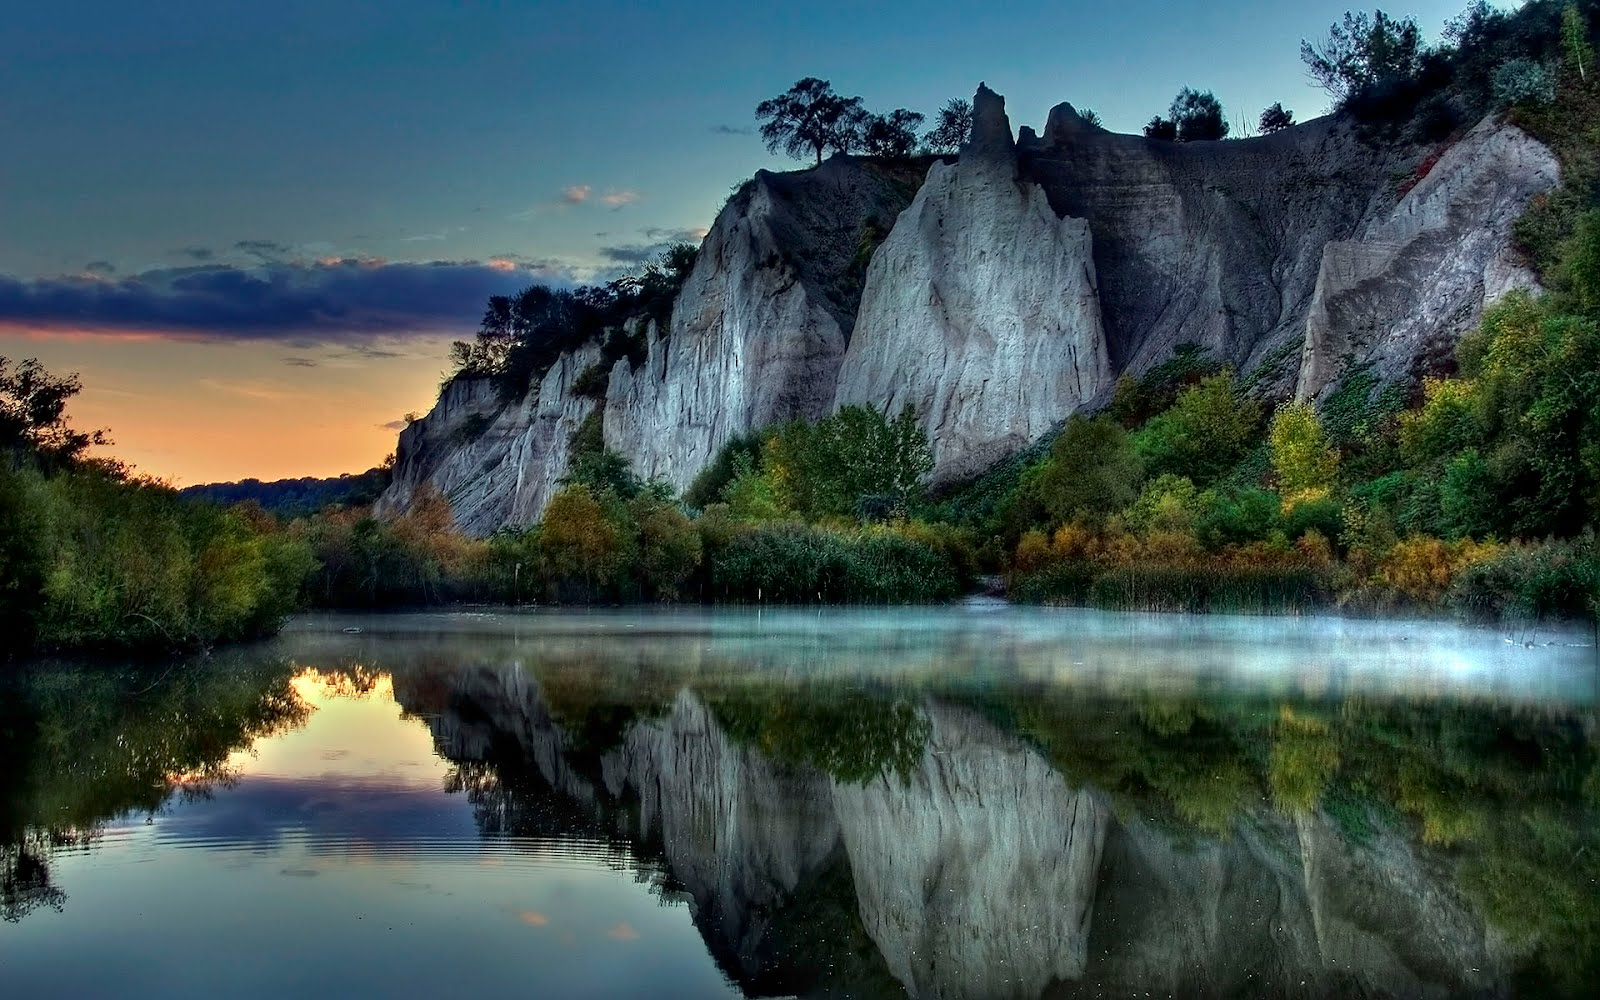 natural image hd wallpaper,natural landscape,nature,reflection,body of water,water